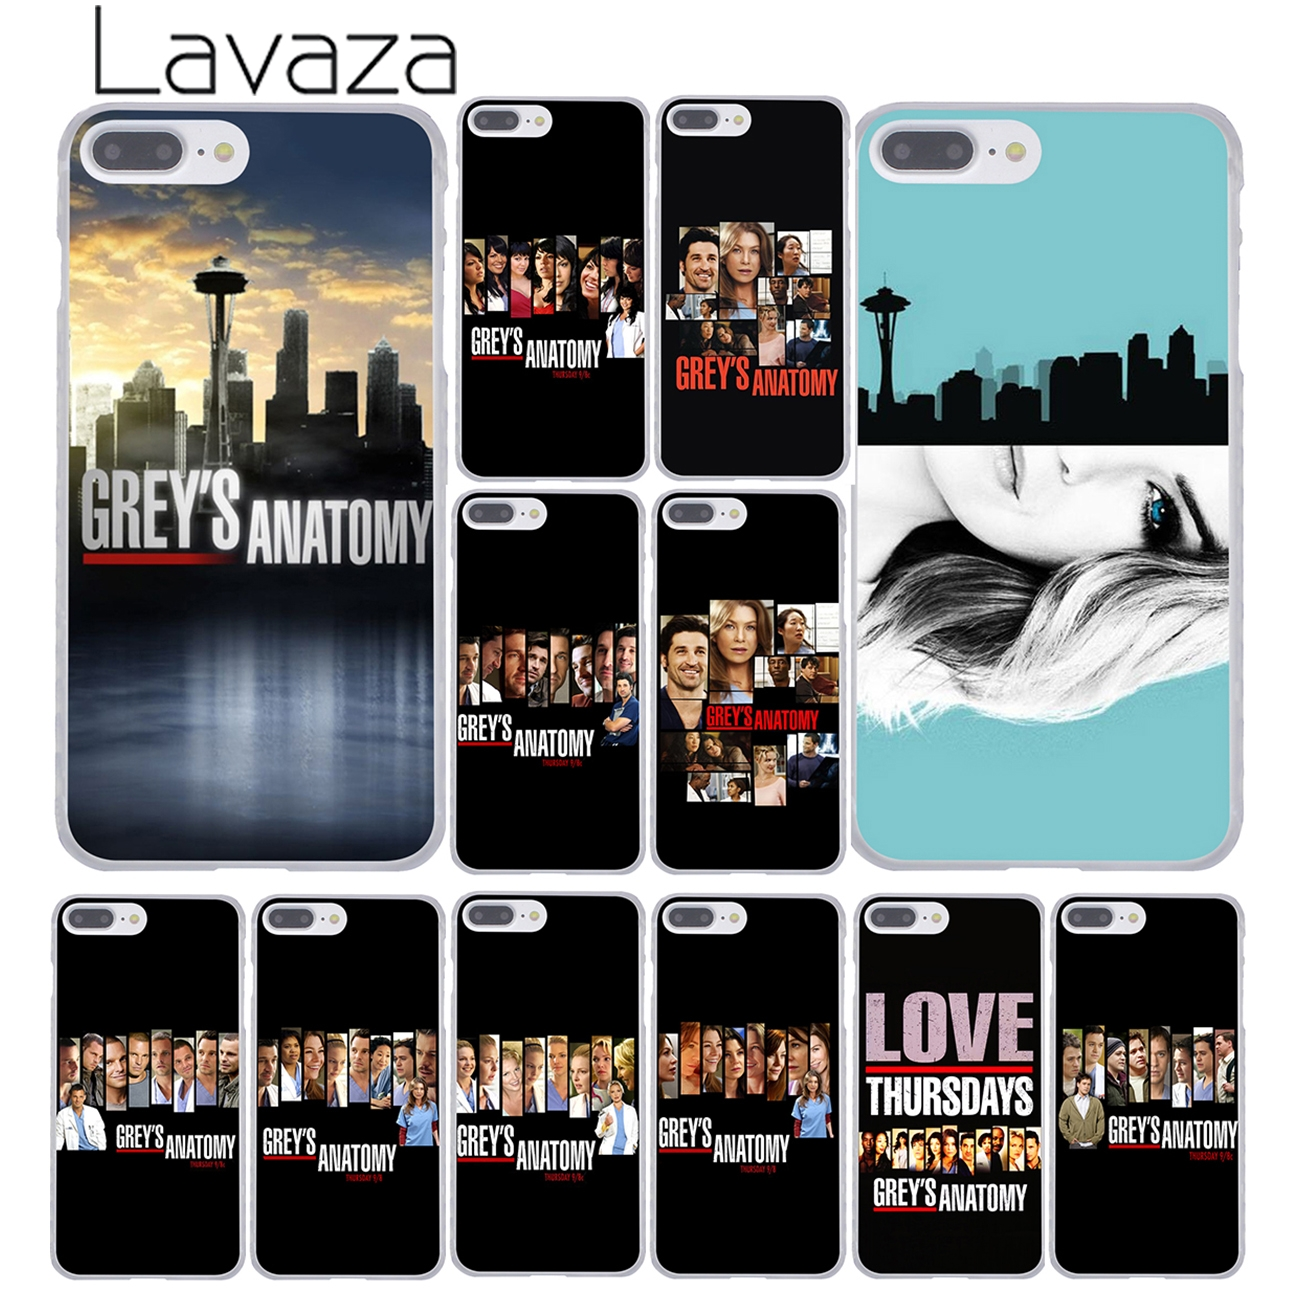 Lavaza <font><b>Grey</b></font> is <font><b>Greys</b></font> <font><b>Grey's</b></font> <font><b>Anatomy</b></font> Season poster 9 Phone <font><b>Case</b></font> for iPhone XR XS X 11 Pro Max 10 7 8 6 6S 5 5S SE 4S 4 Cover image